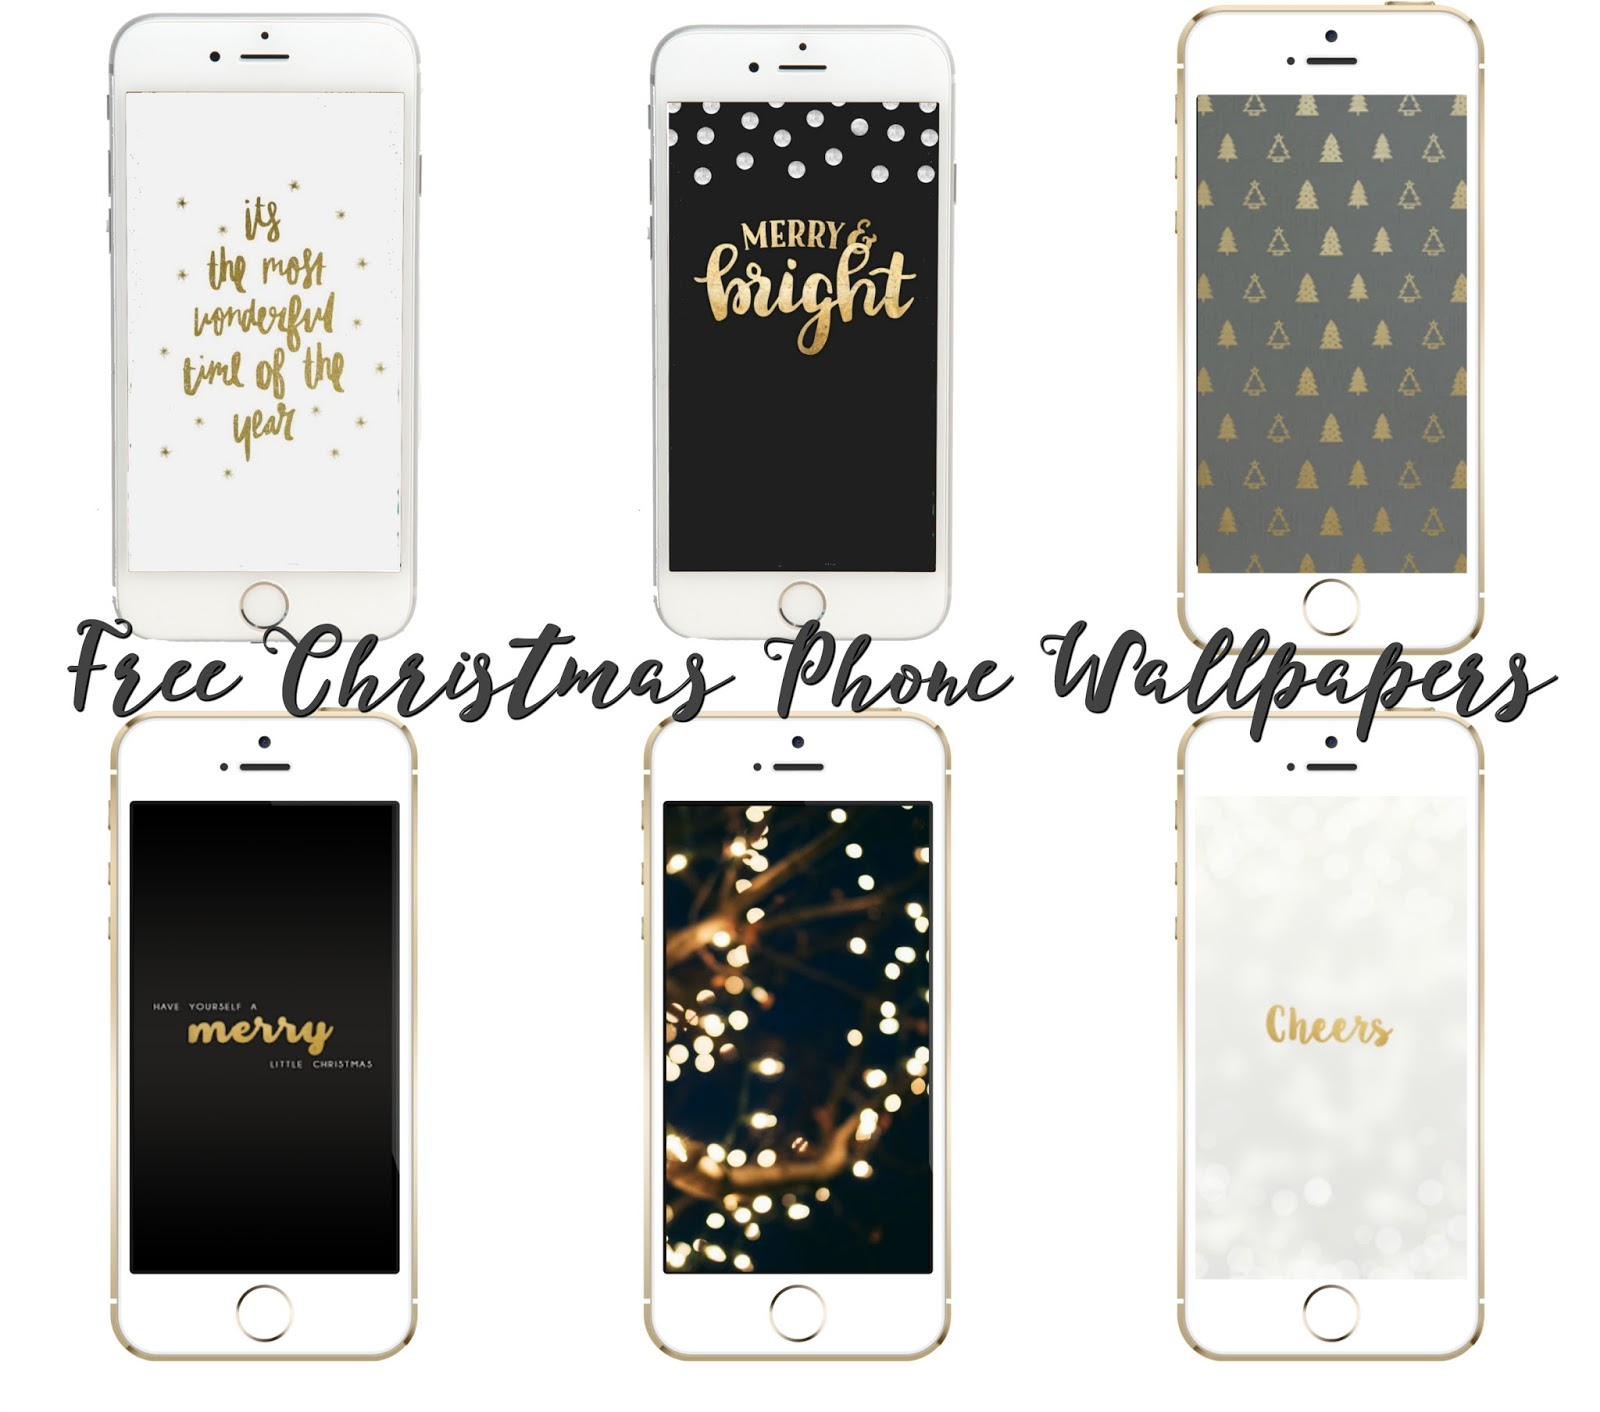 Free Christmas Themed Phone Wallpapers